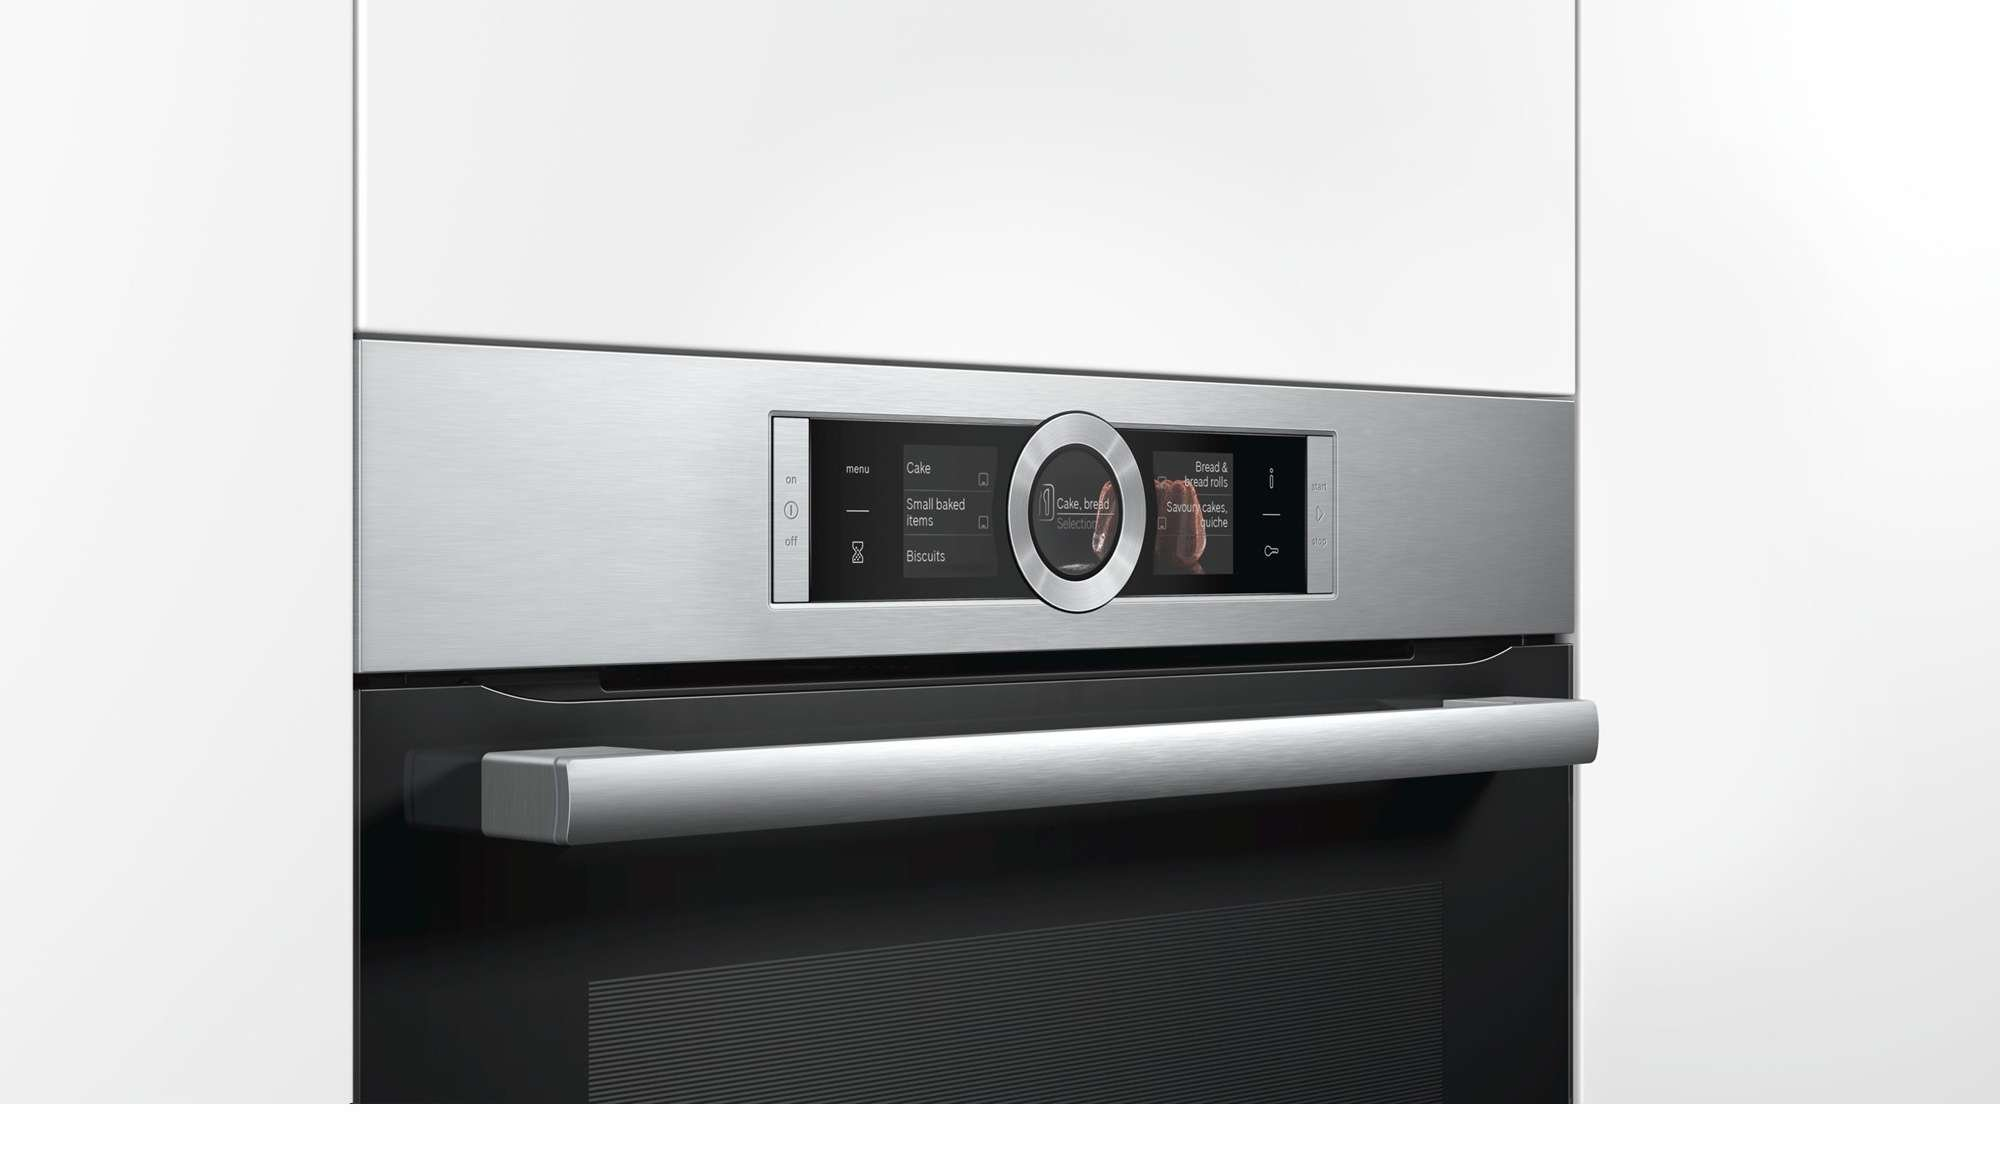 bosch 60cm series 8 71l pyrolytic electric wall oven hbg6767s1a ebay. Black Bedroom Furniture Sets. Home Design Ideas